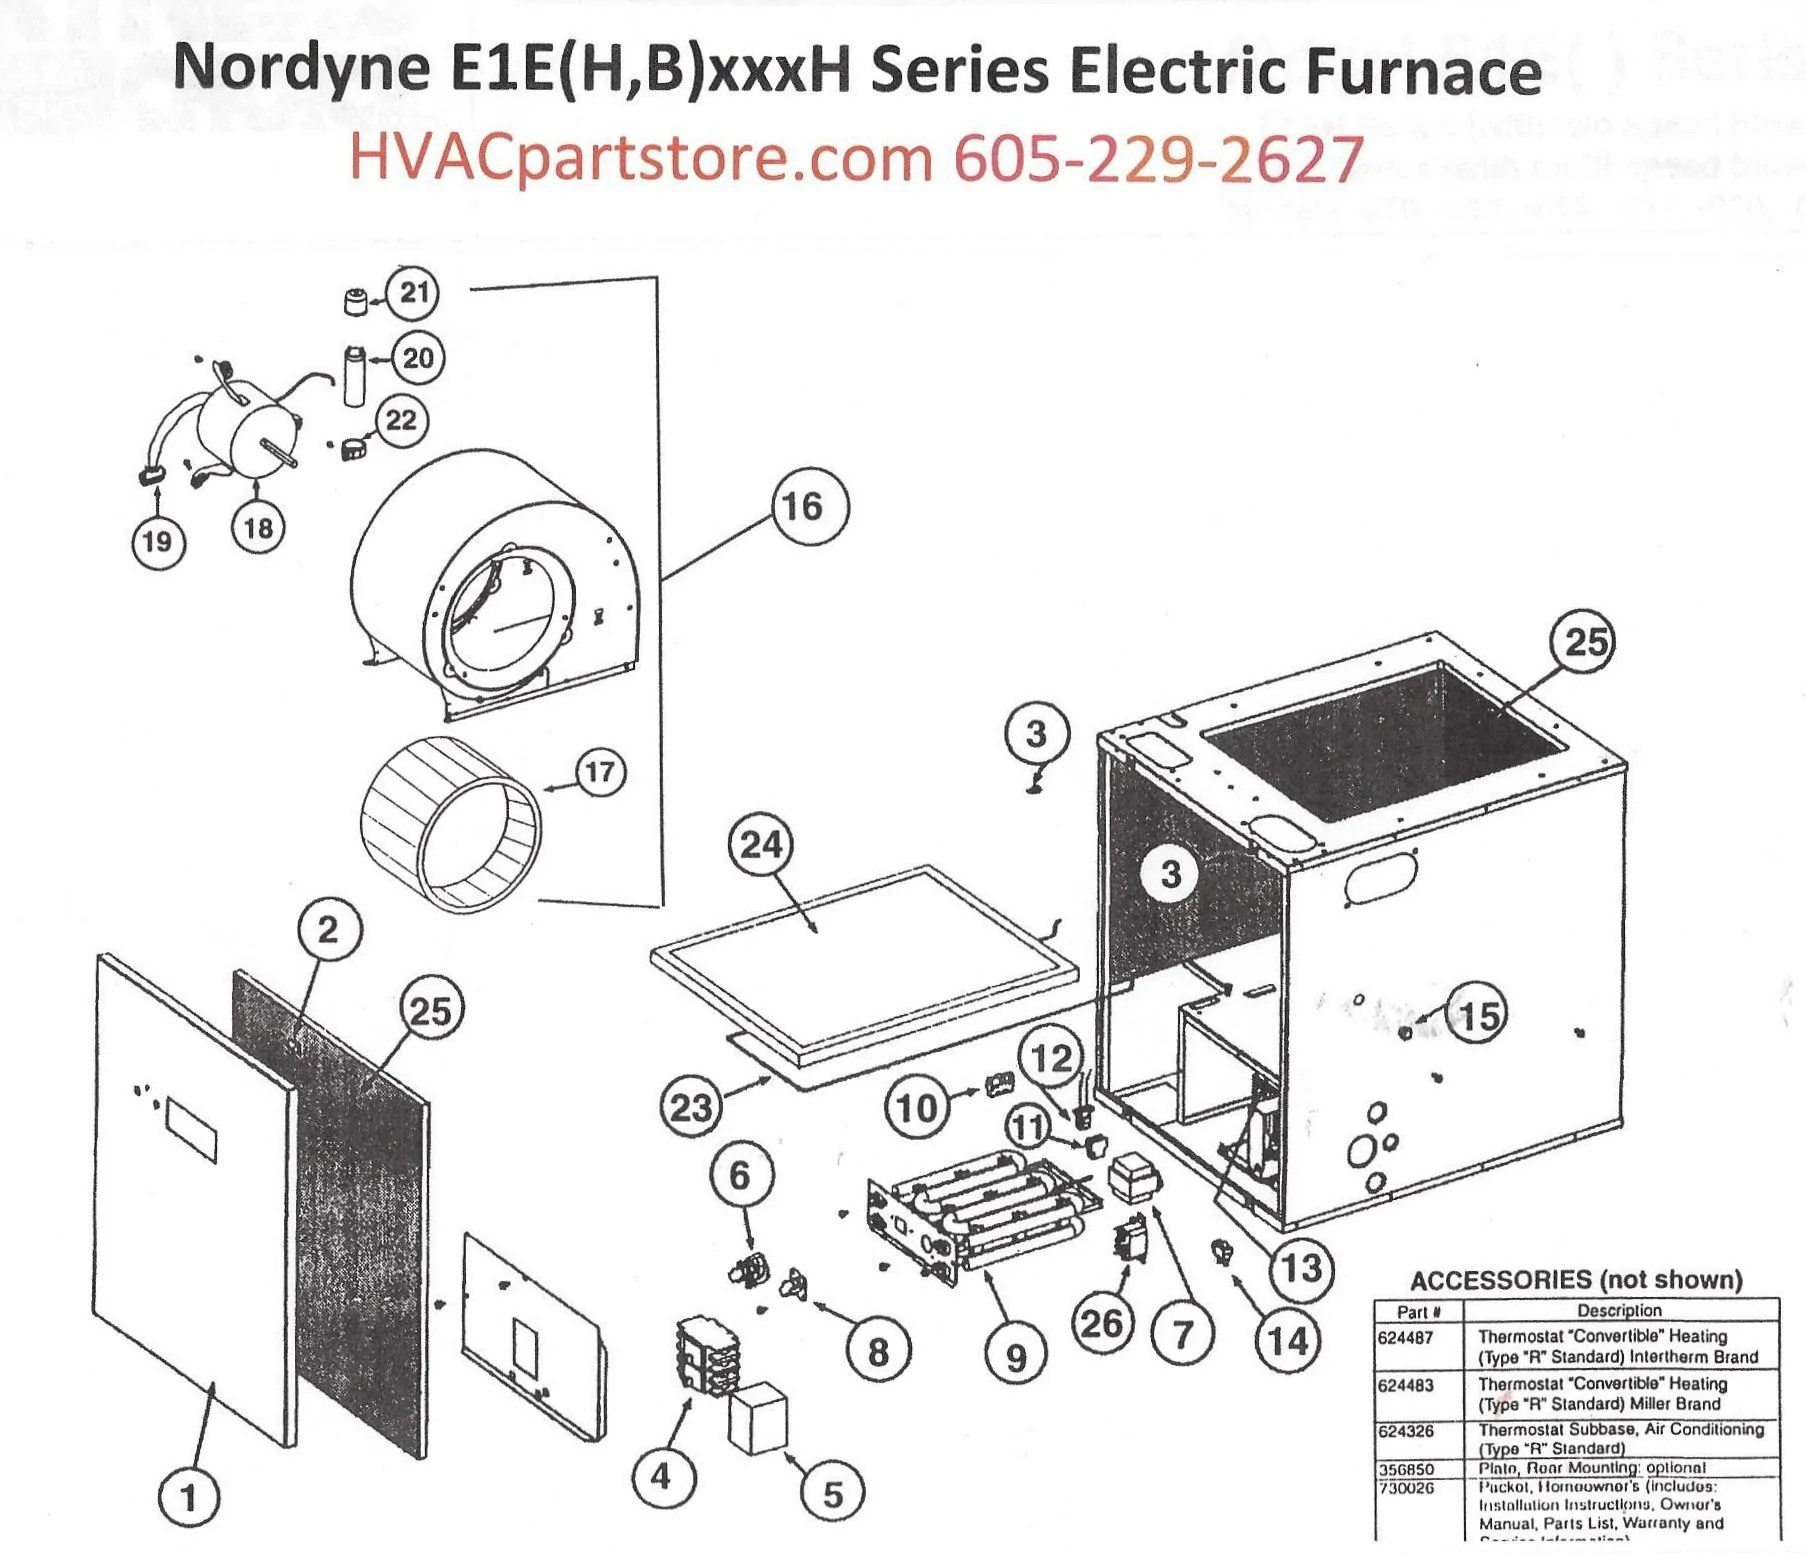 E1EH012H Nordyne Electric Furnace Parts – HVACpartstore